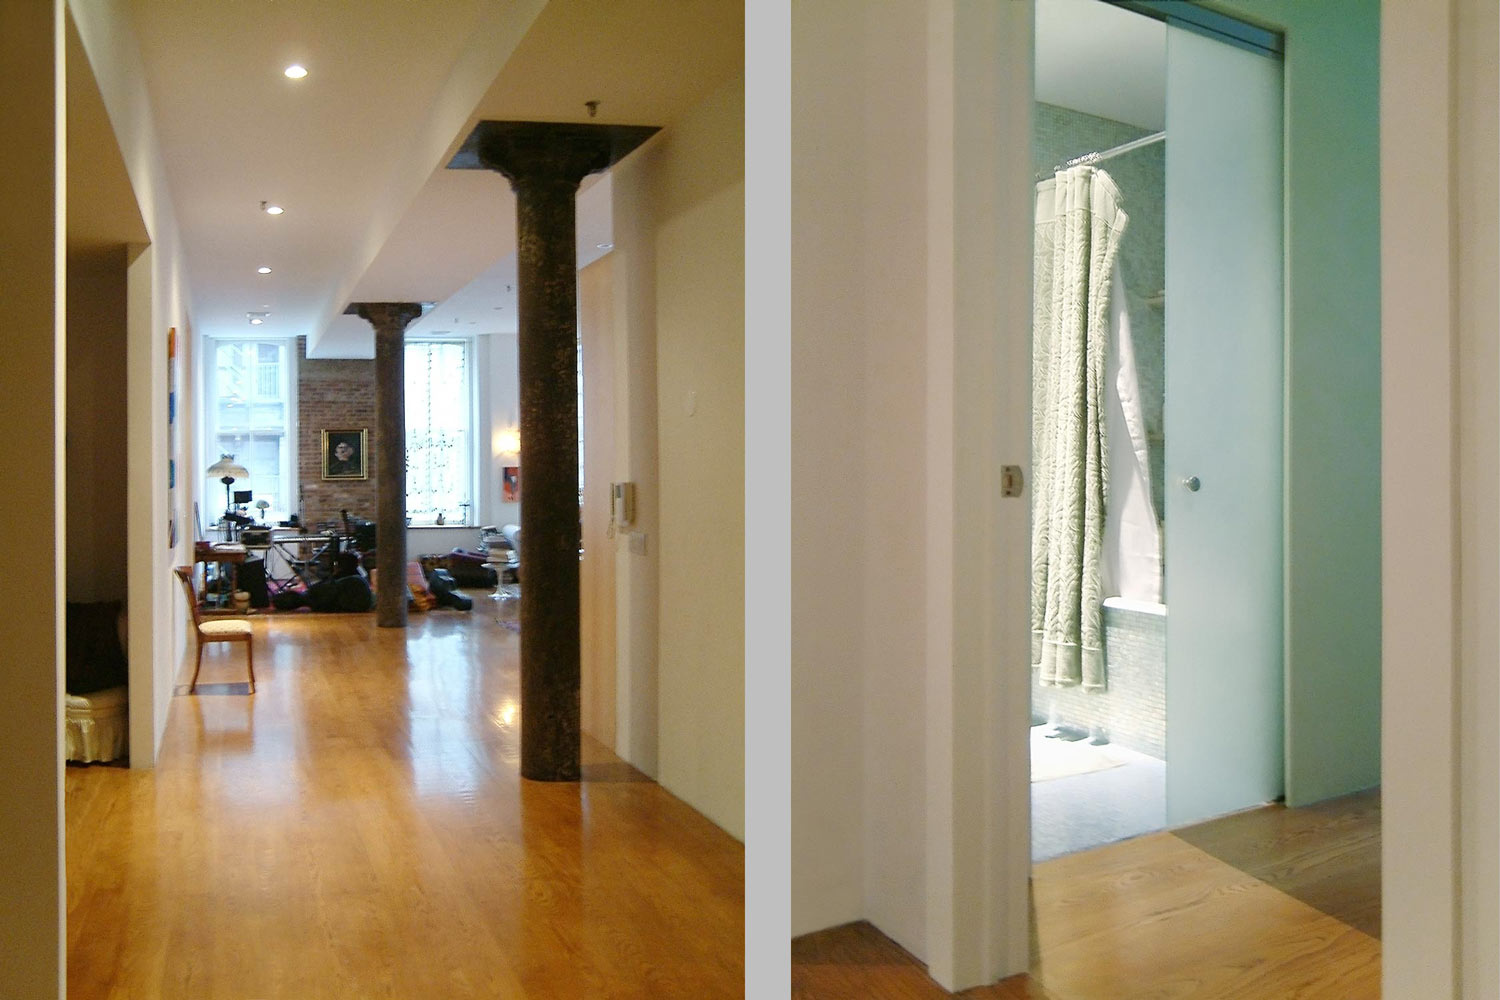 Tribeca loft by OCV featuring outsized living spaces, restored cast iron columns and refurbished timber beams.